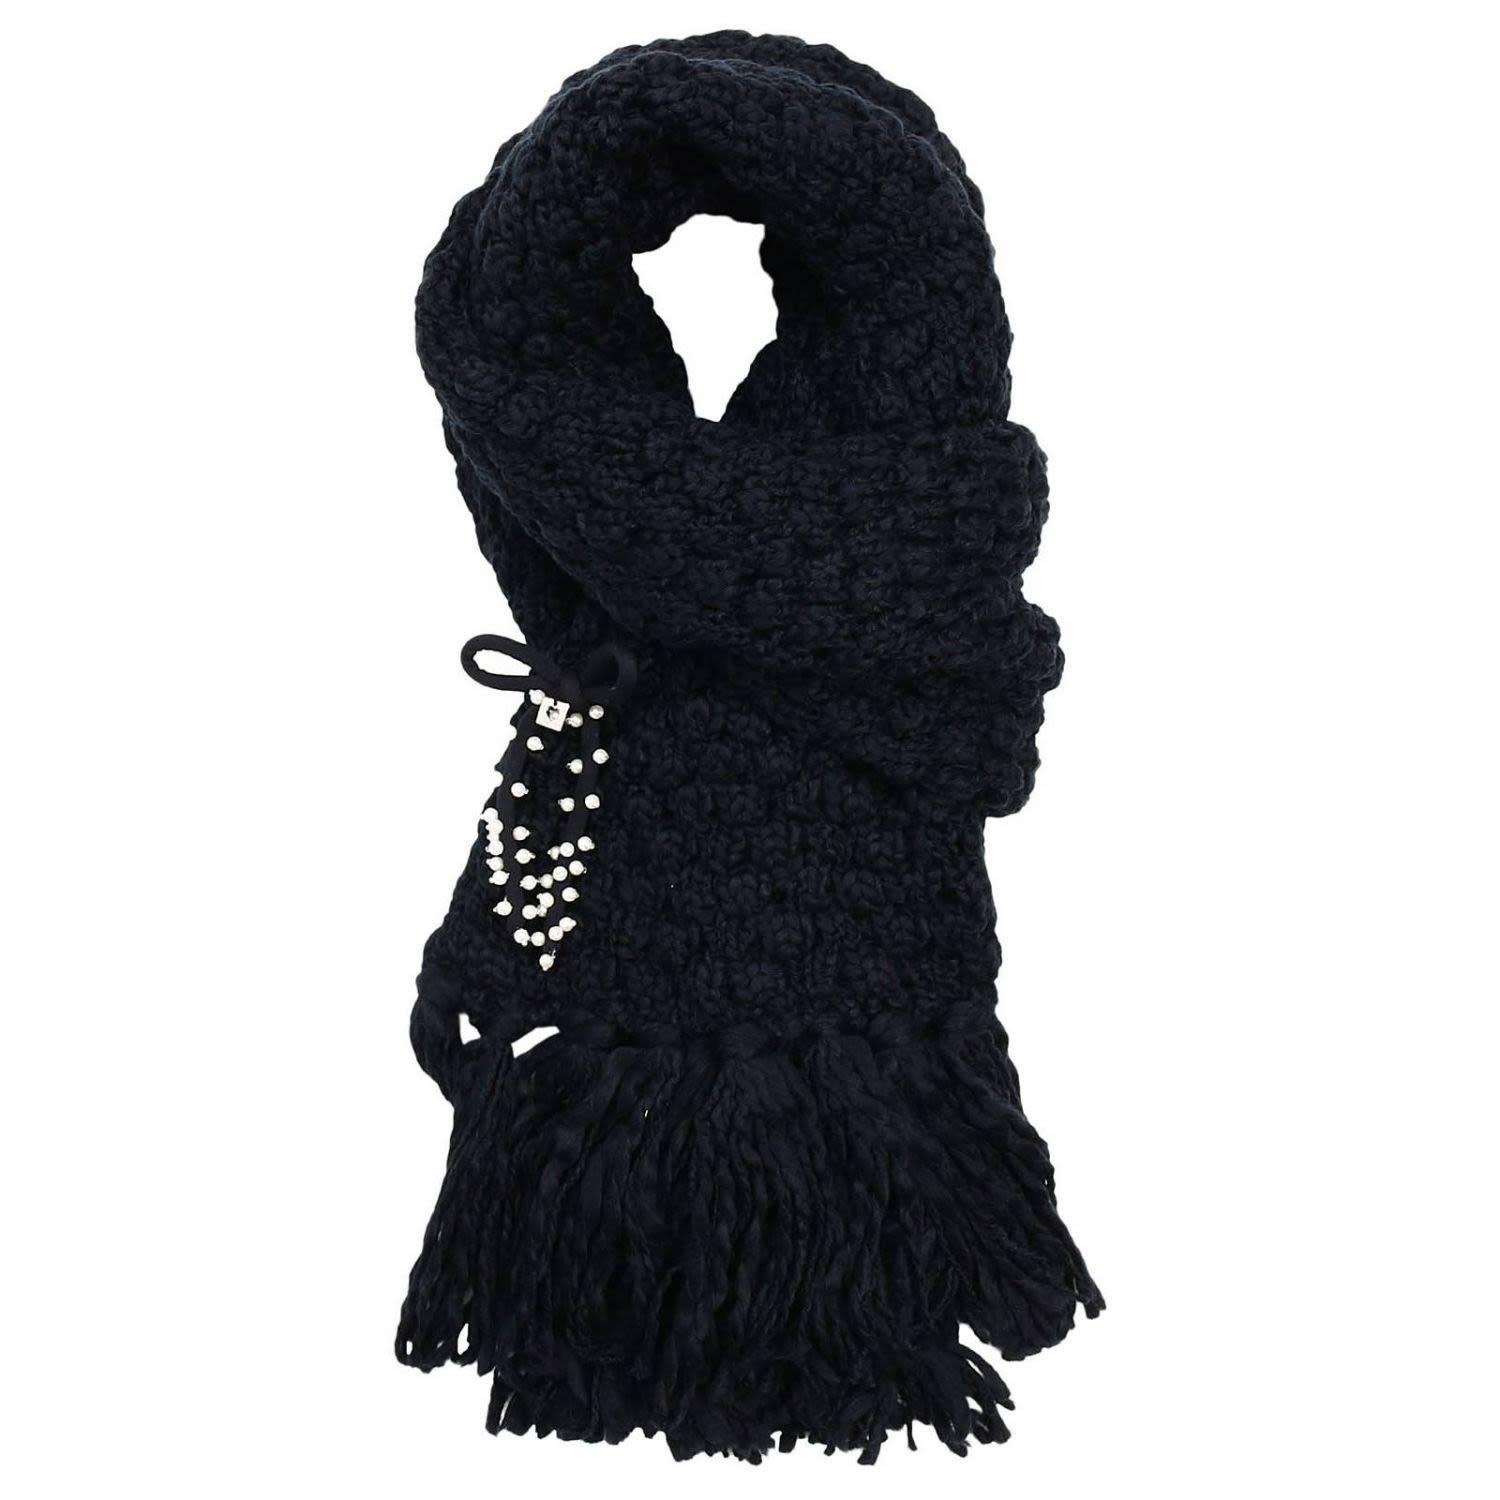 Twinset Scarf Scarf Women Twin Set In Black